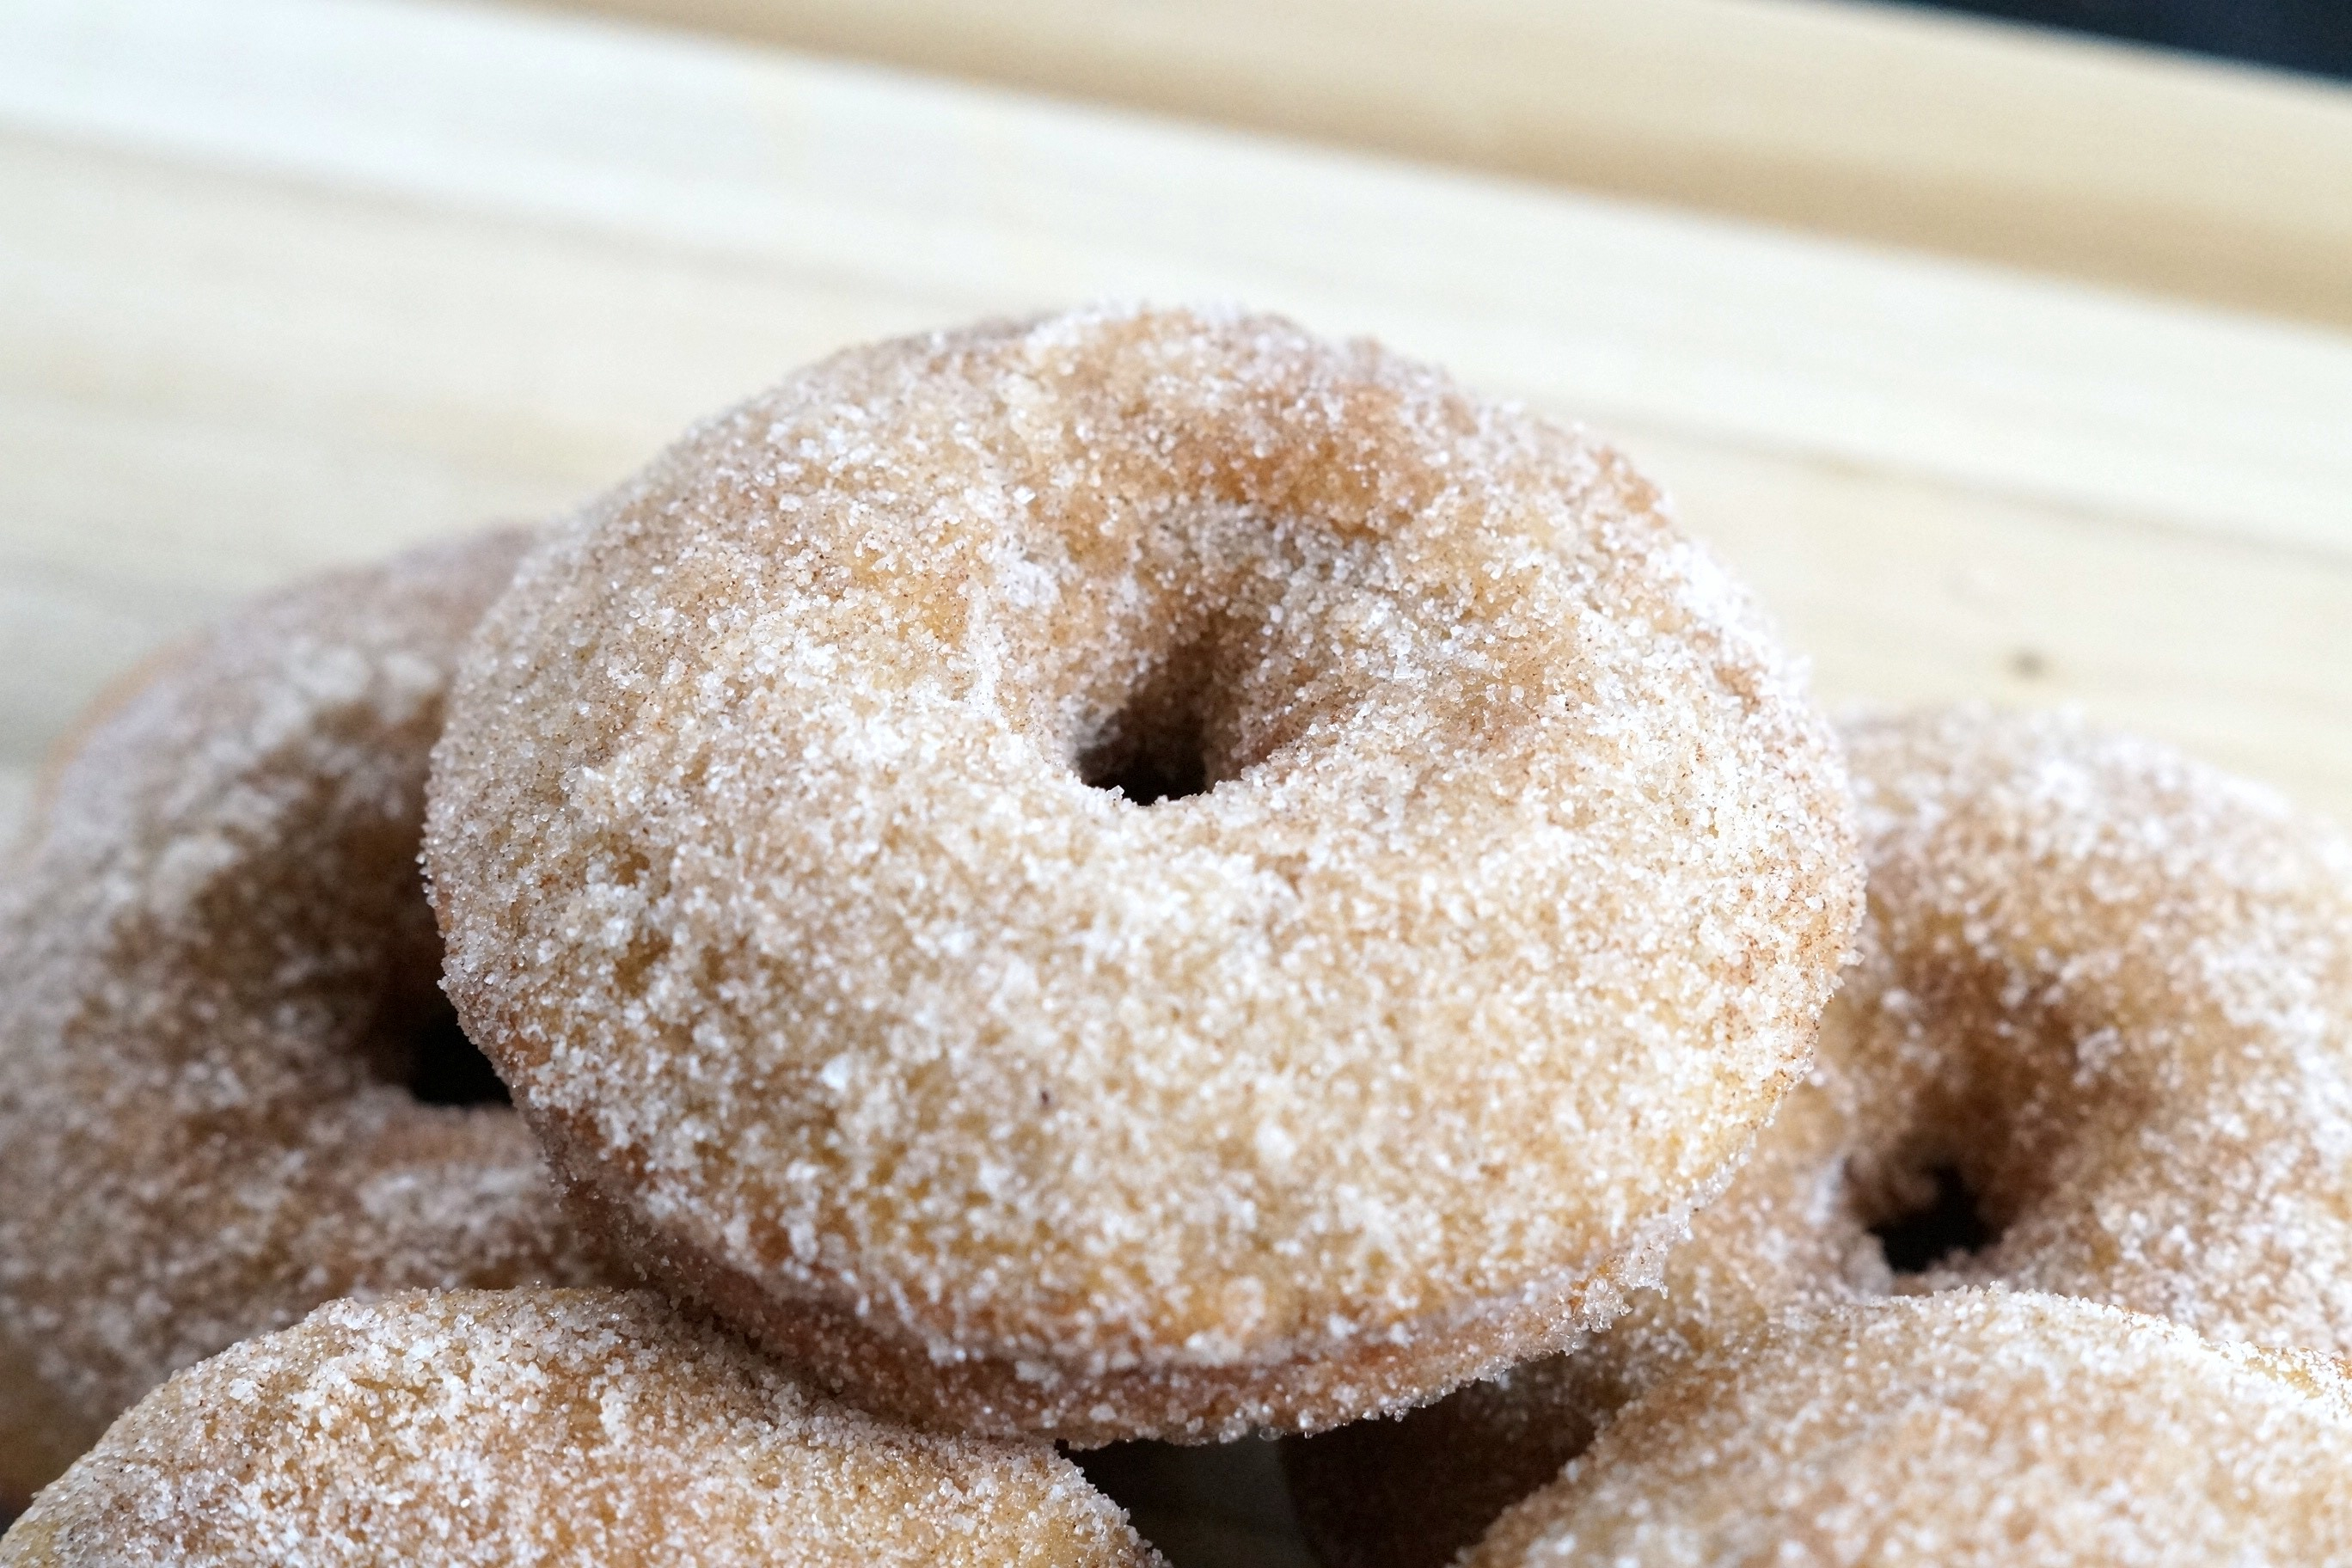 Learn how to make cinnamon sugar baked donuts by following this simple recipe! Cinnamon sugar baked donuts are perfect for lazy weekends!